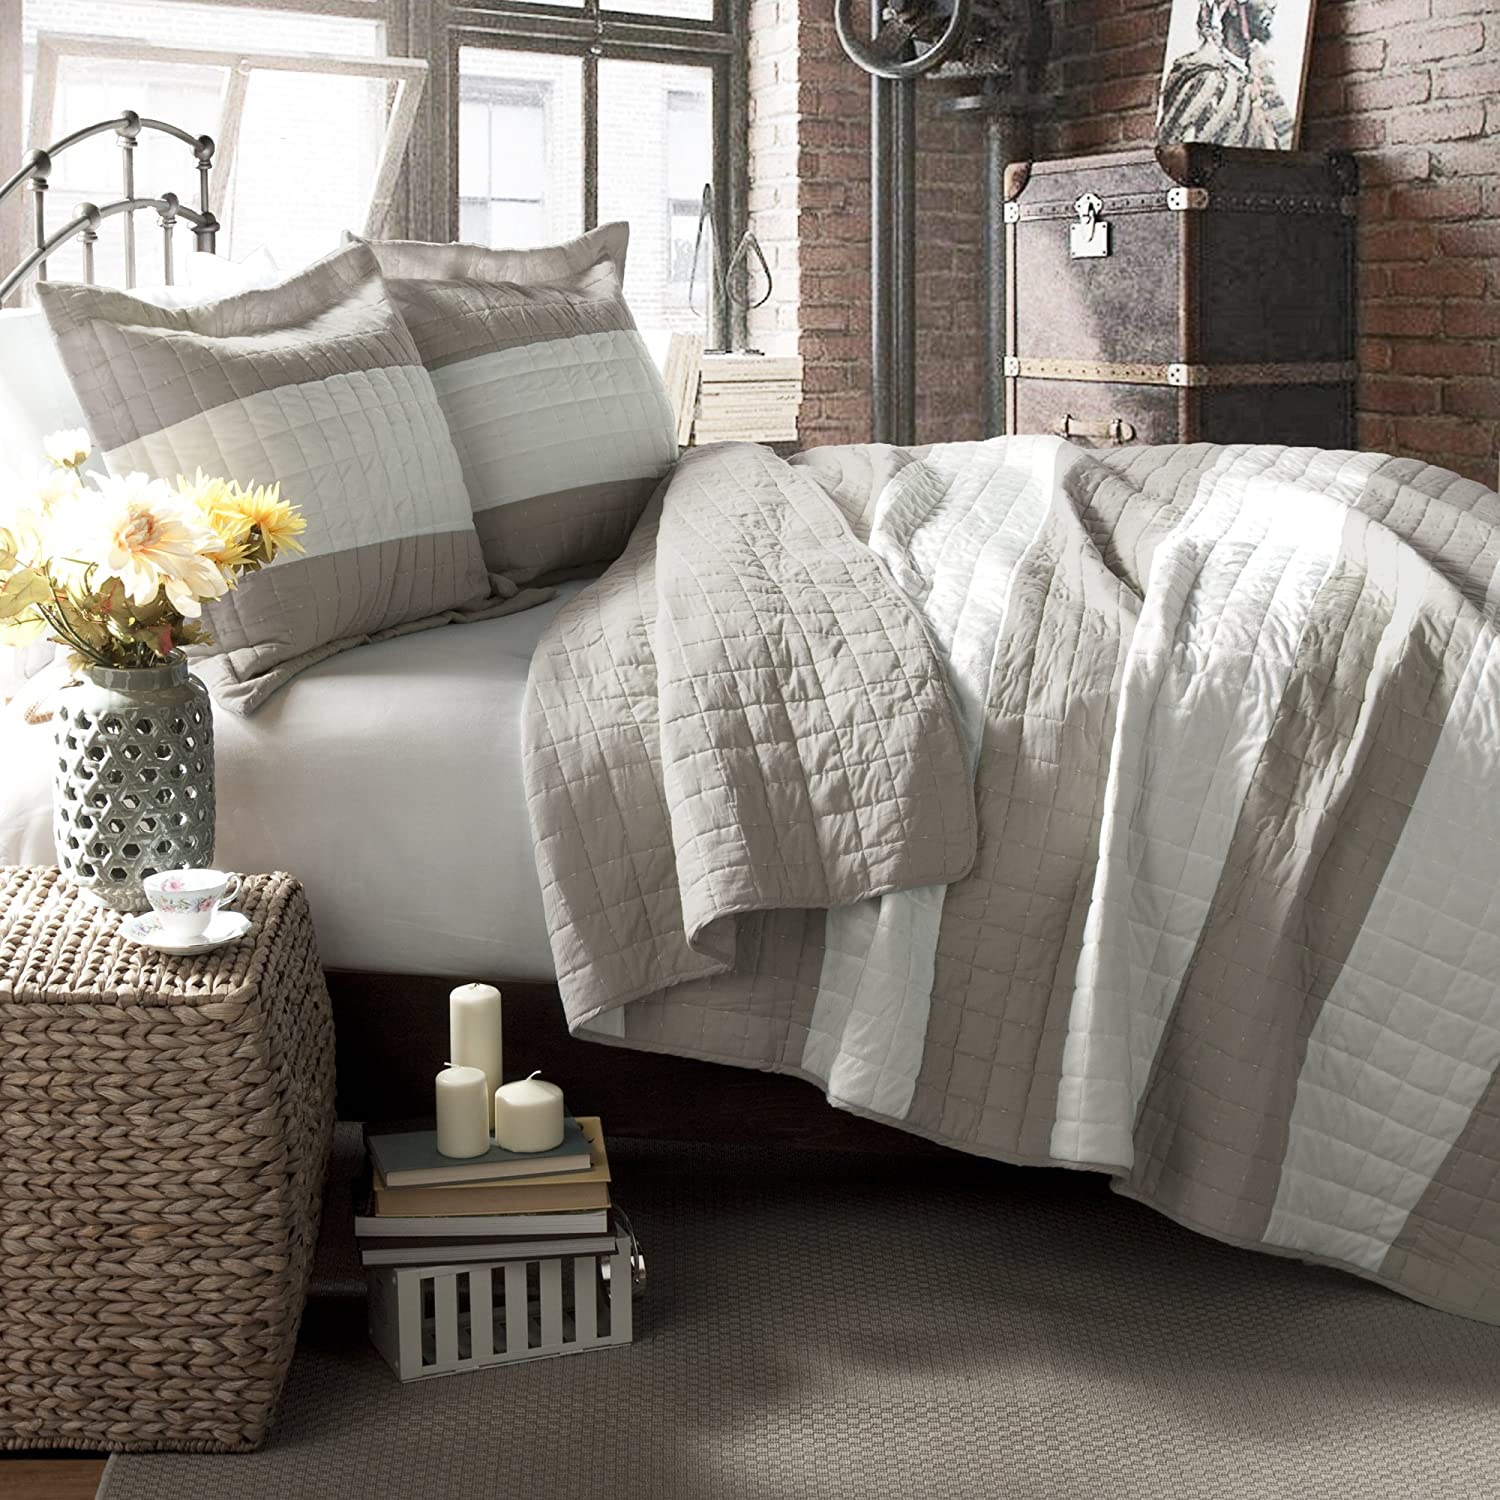 Lush Decor Berlin Stripe 3-Piece Quilt Set, Full/Queen, Taupe